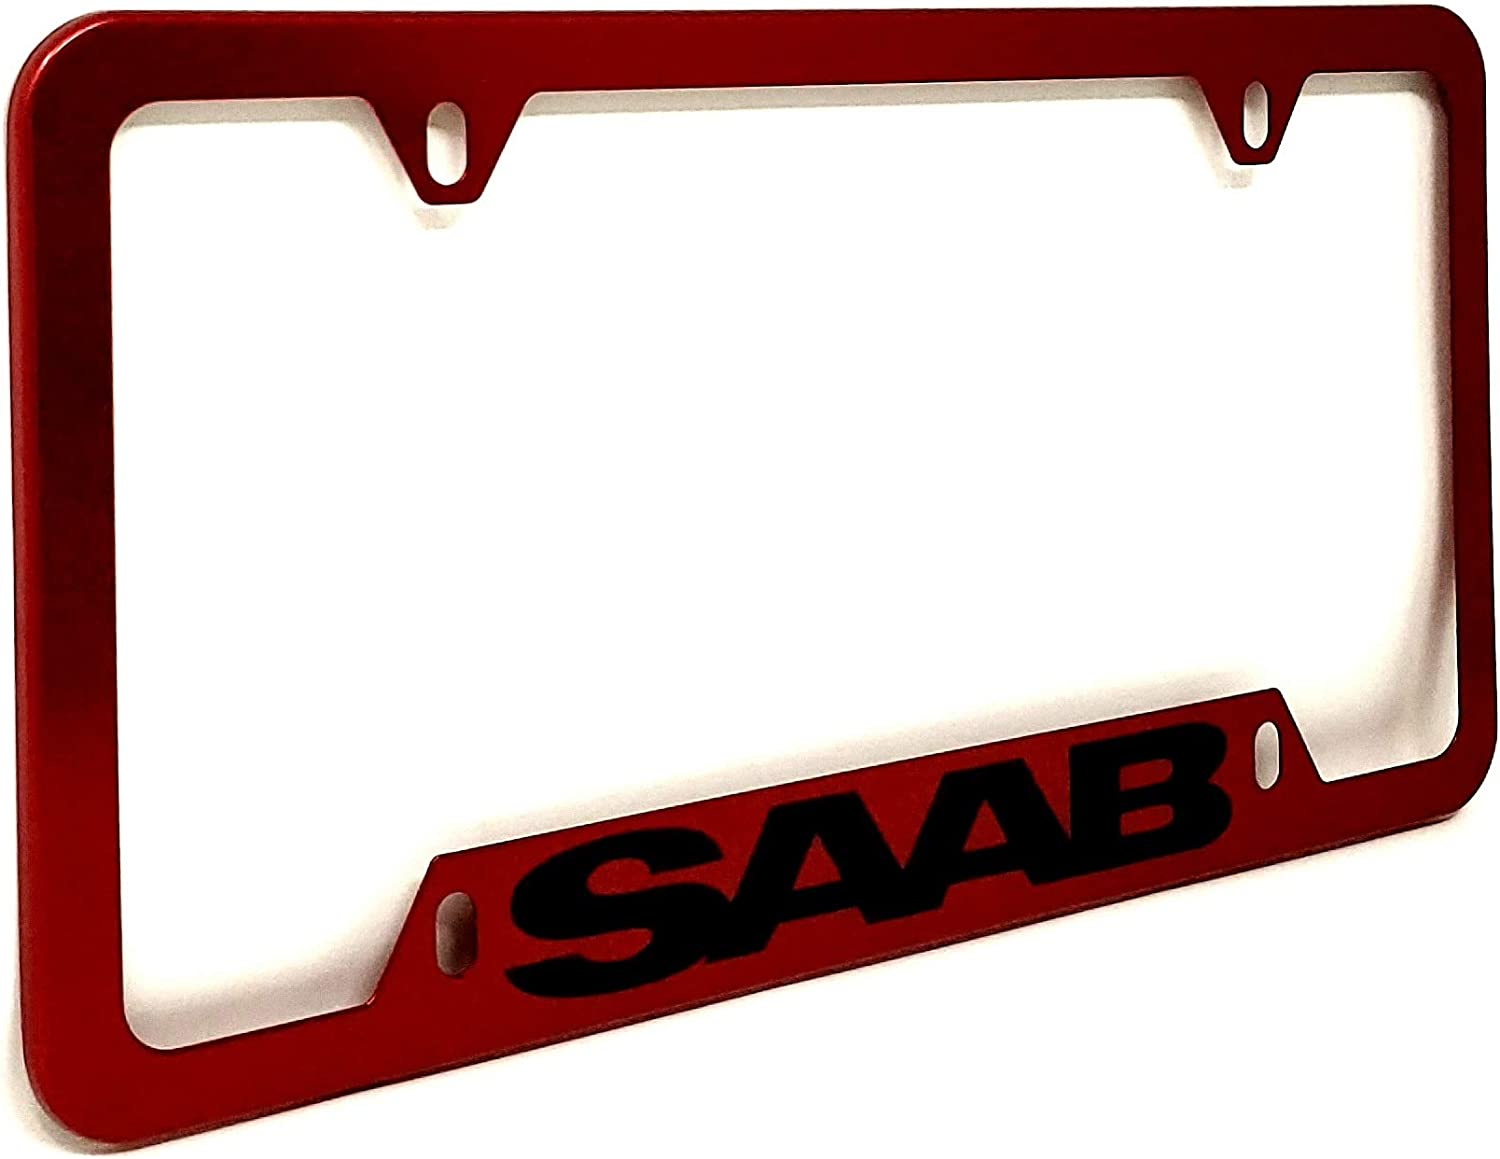 ZENCO for SAAB 9-2 9-3 etc Car New License Plate Frame Cover Hard Waterproof Weatherproof Durable Plate Holder with Screw Caps Premium Metal 4 Holes RED with Black Letters